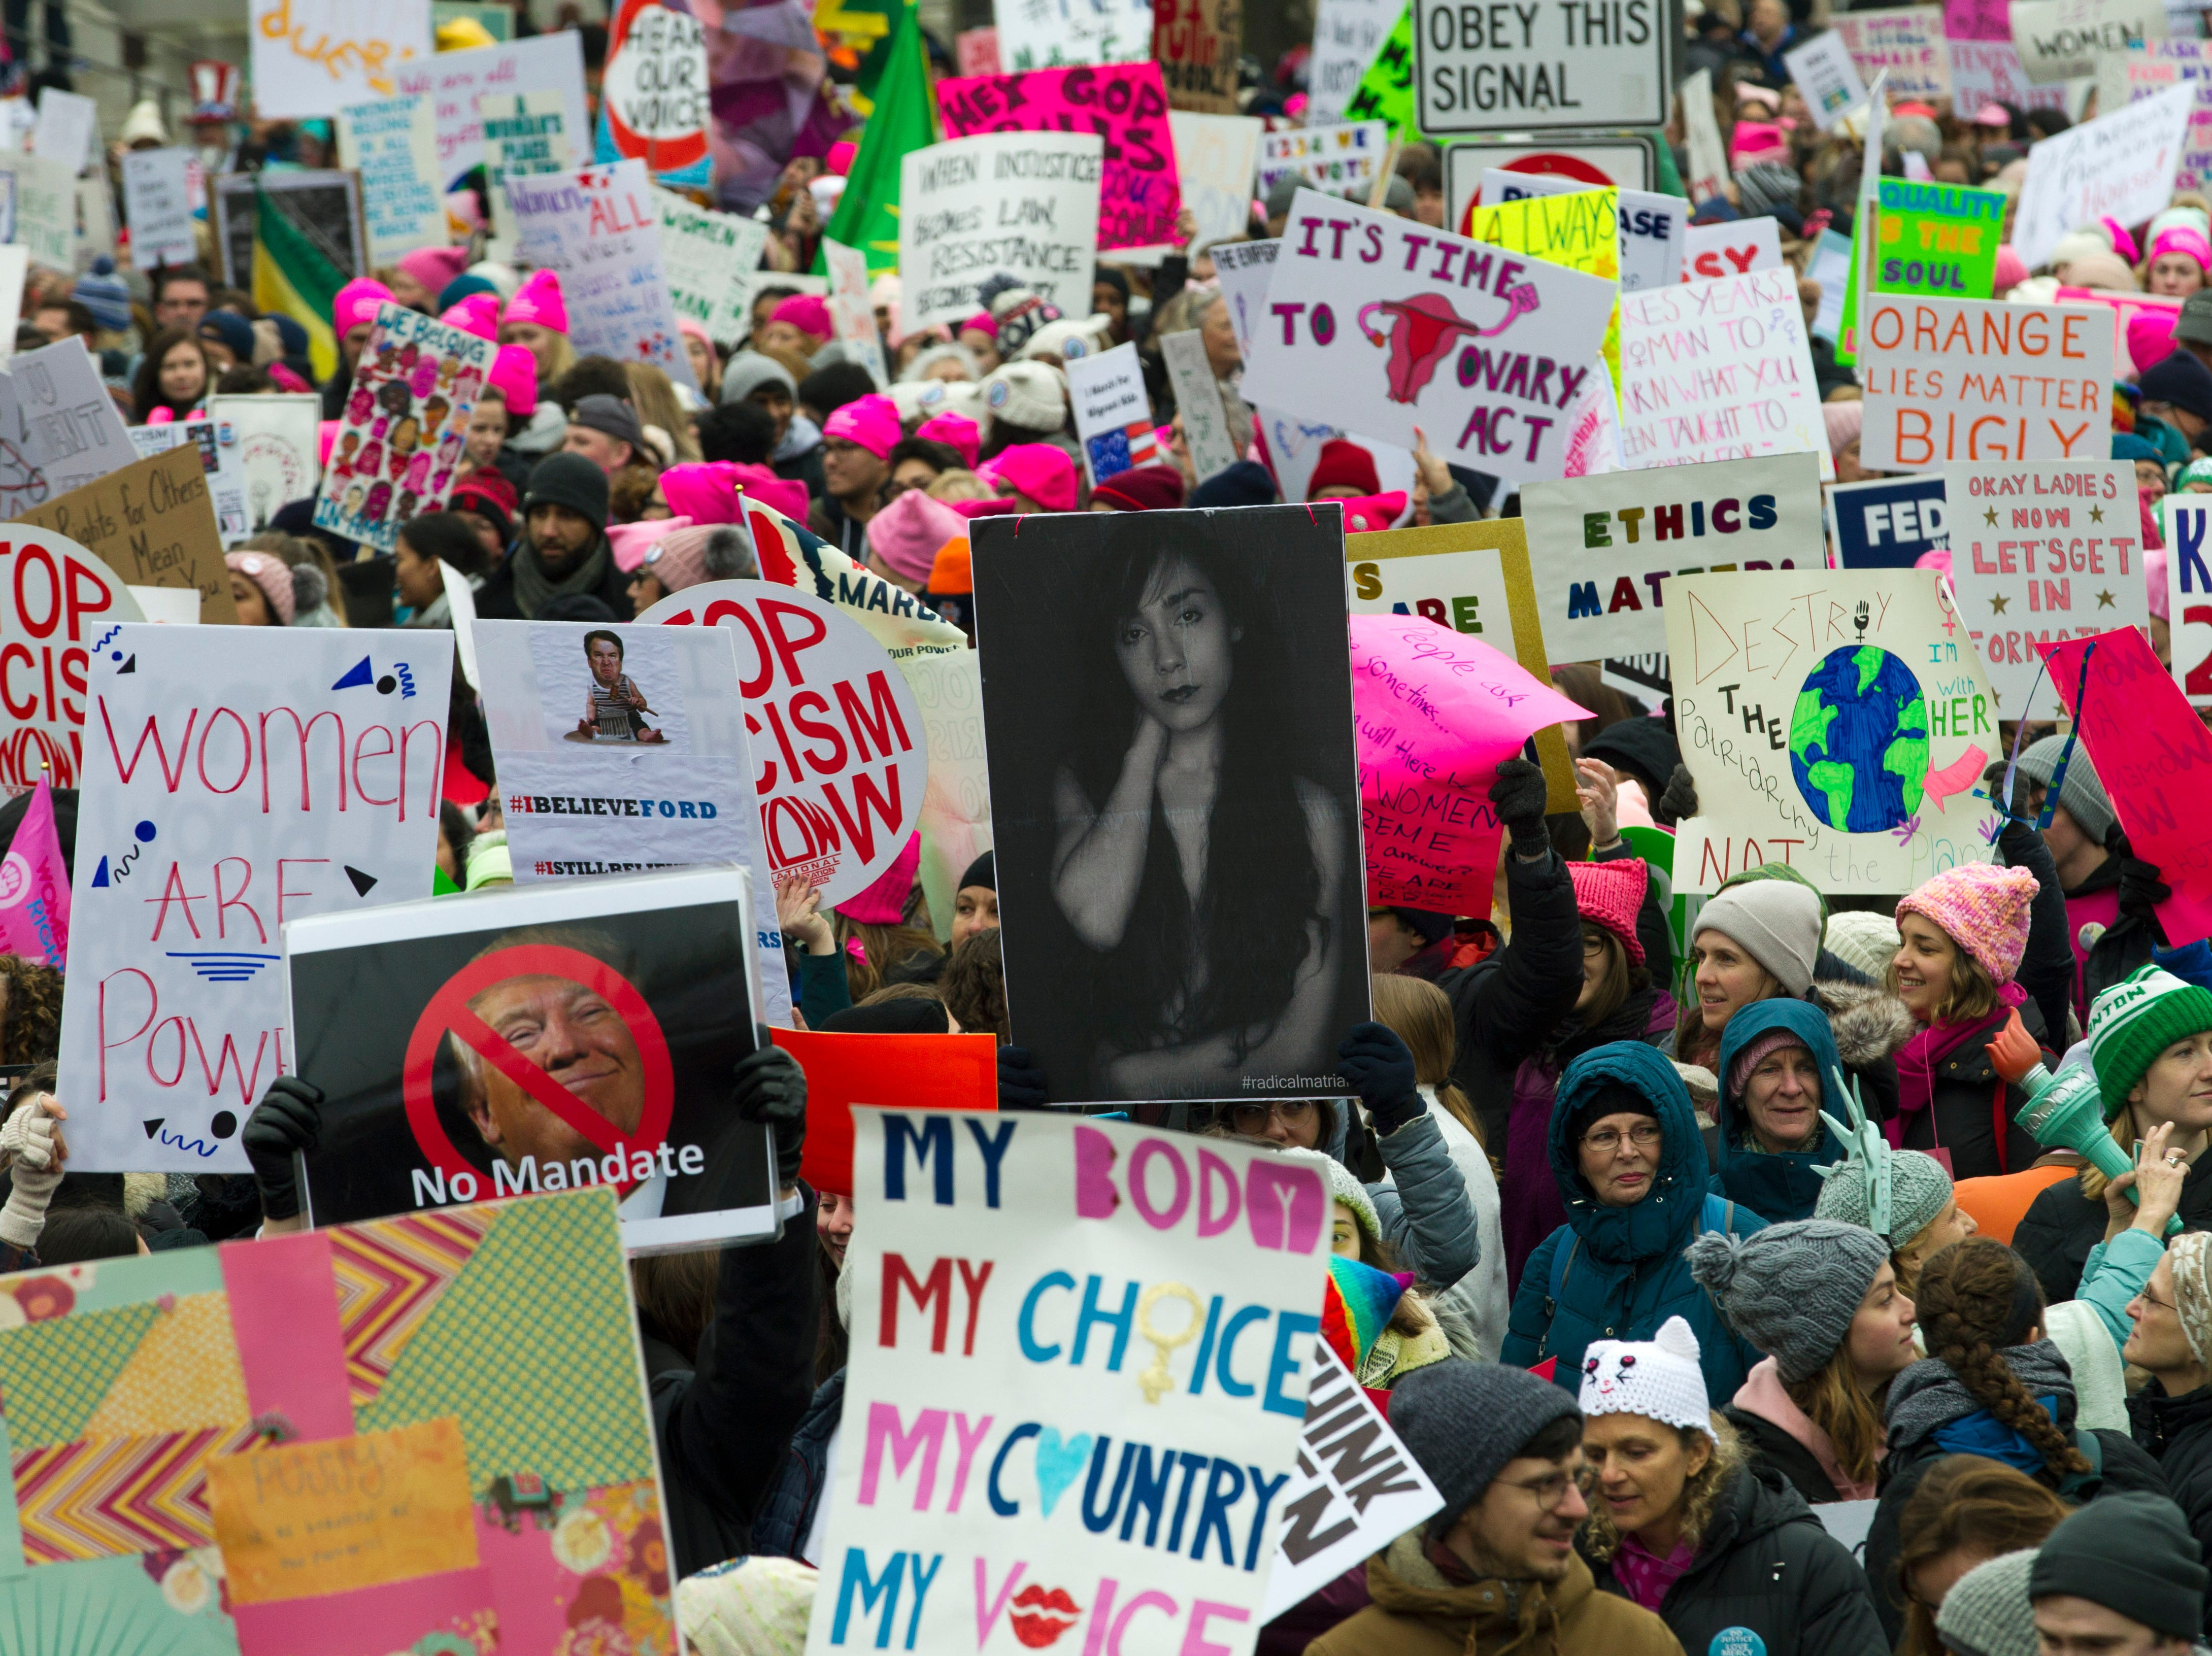 Demonstrators hold signs as they march on Pennsylvania Avenue during the Women's March in Washington on Saturday, Jan. 19, 2019.